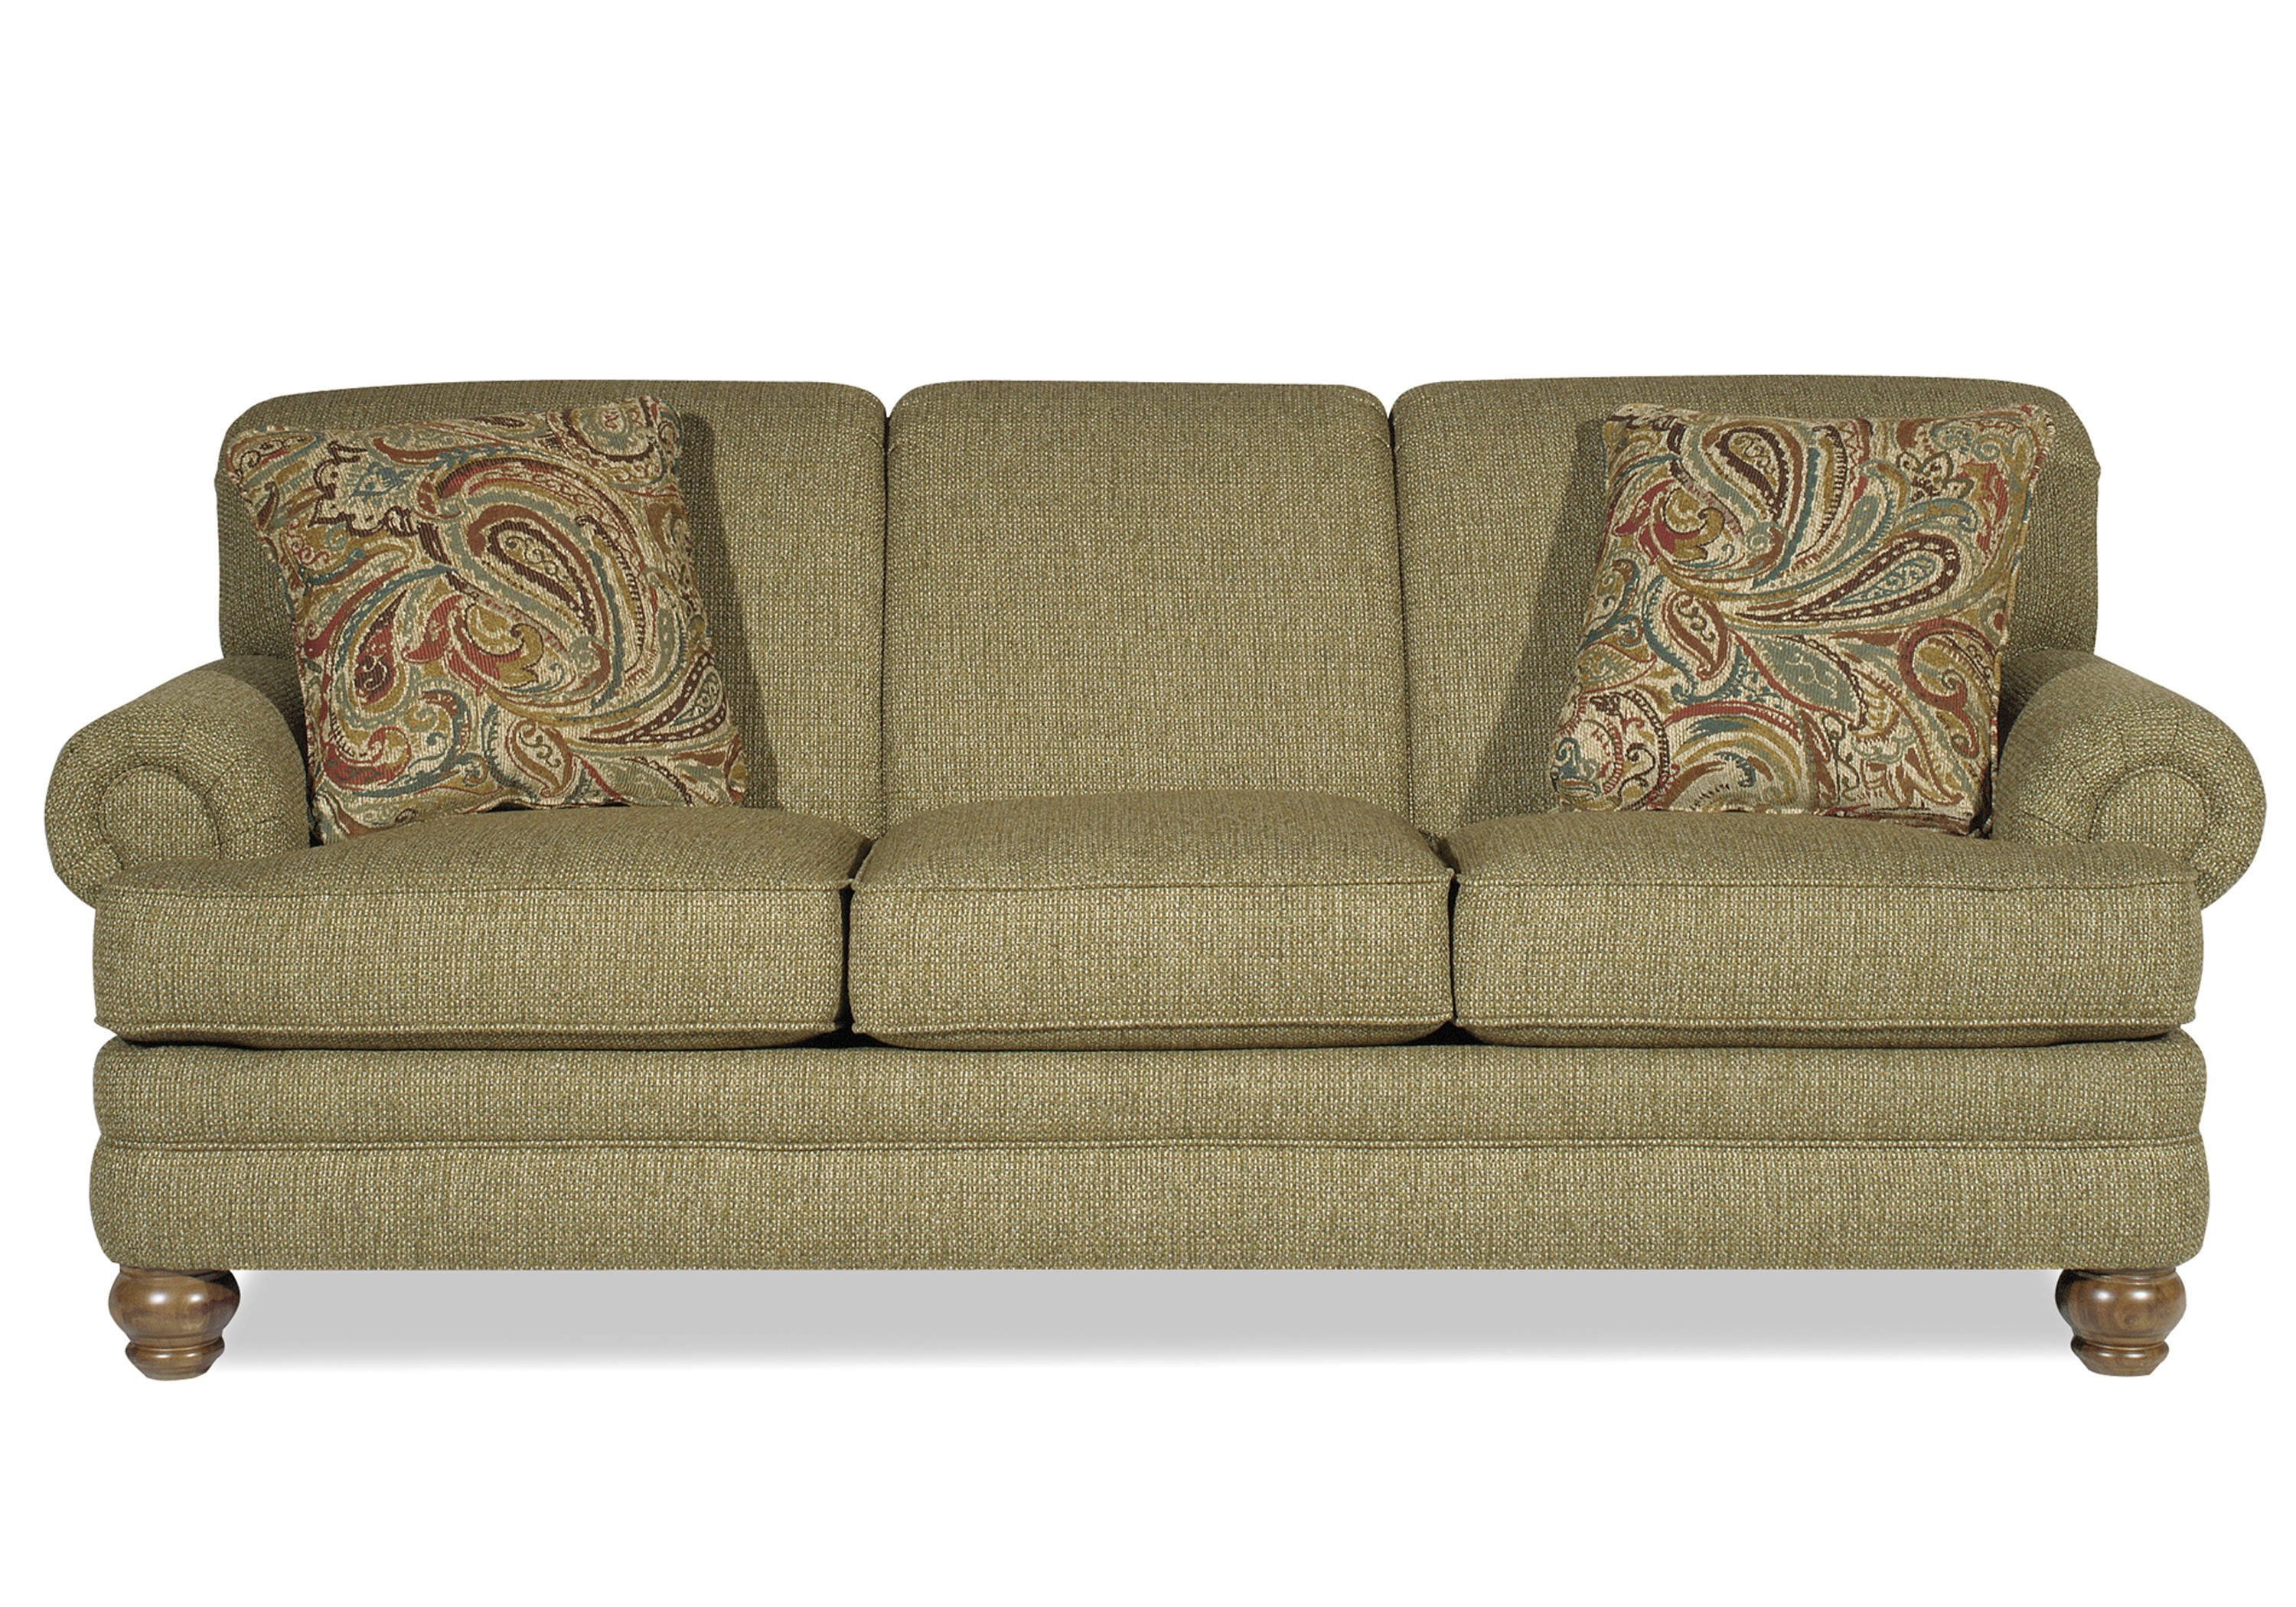 Sample Furniture SF-1030-20-B Cover/Finish Field Avalon Collection Field 81W x 37D x 36H  Dimensions Field